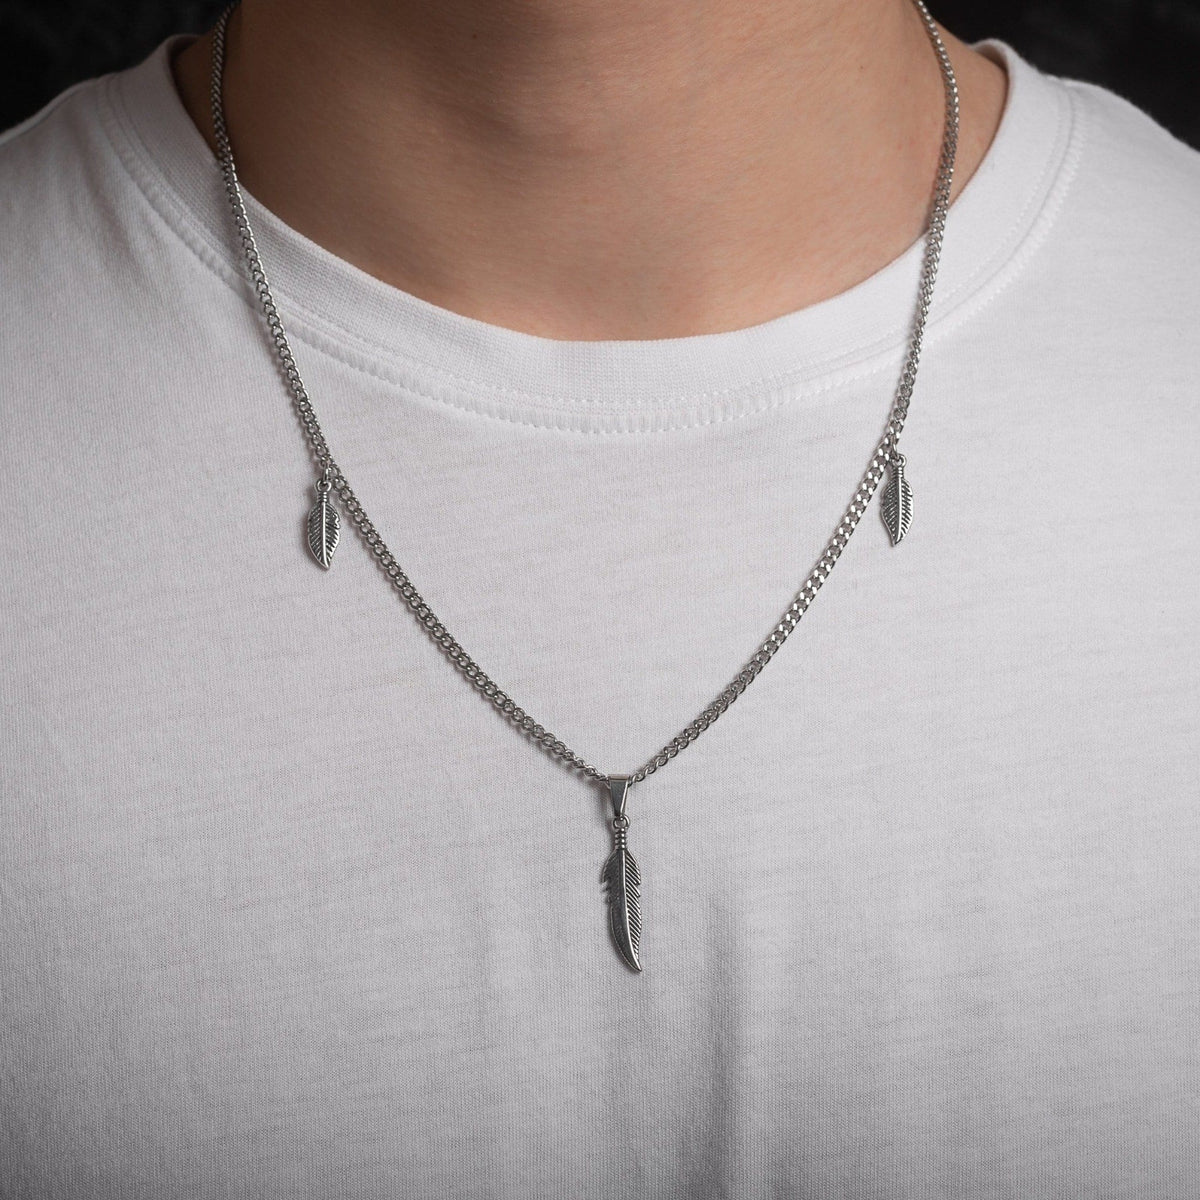 Feathered Necklace 2.0 STATEMENT